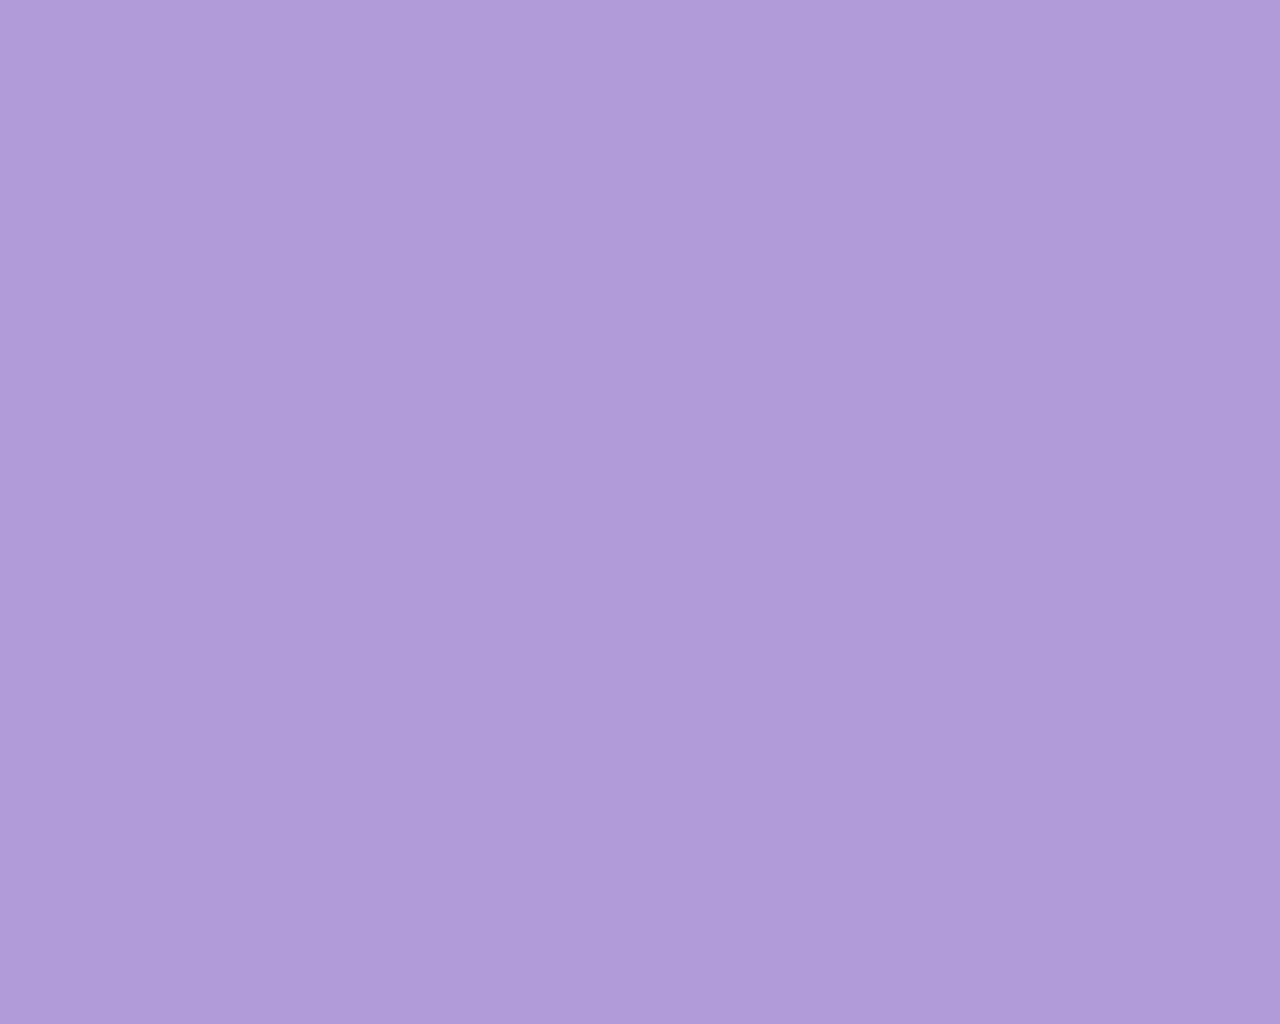 1280x1024 light pastel purple solid color background